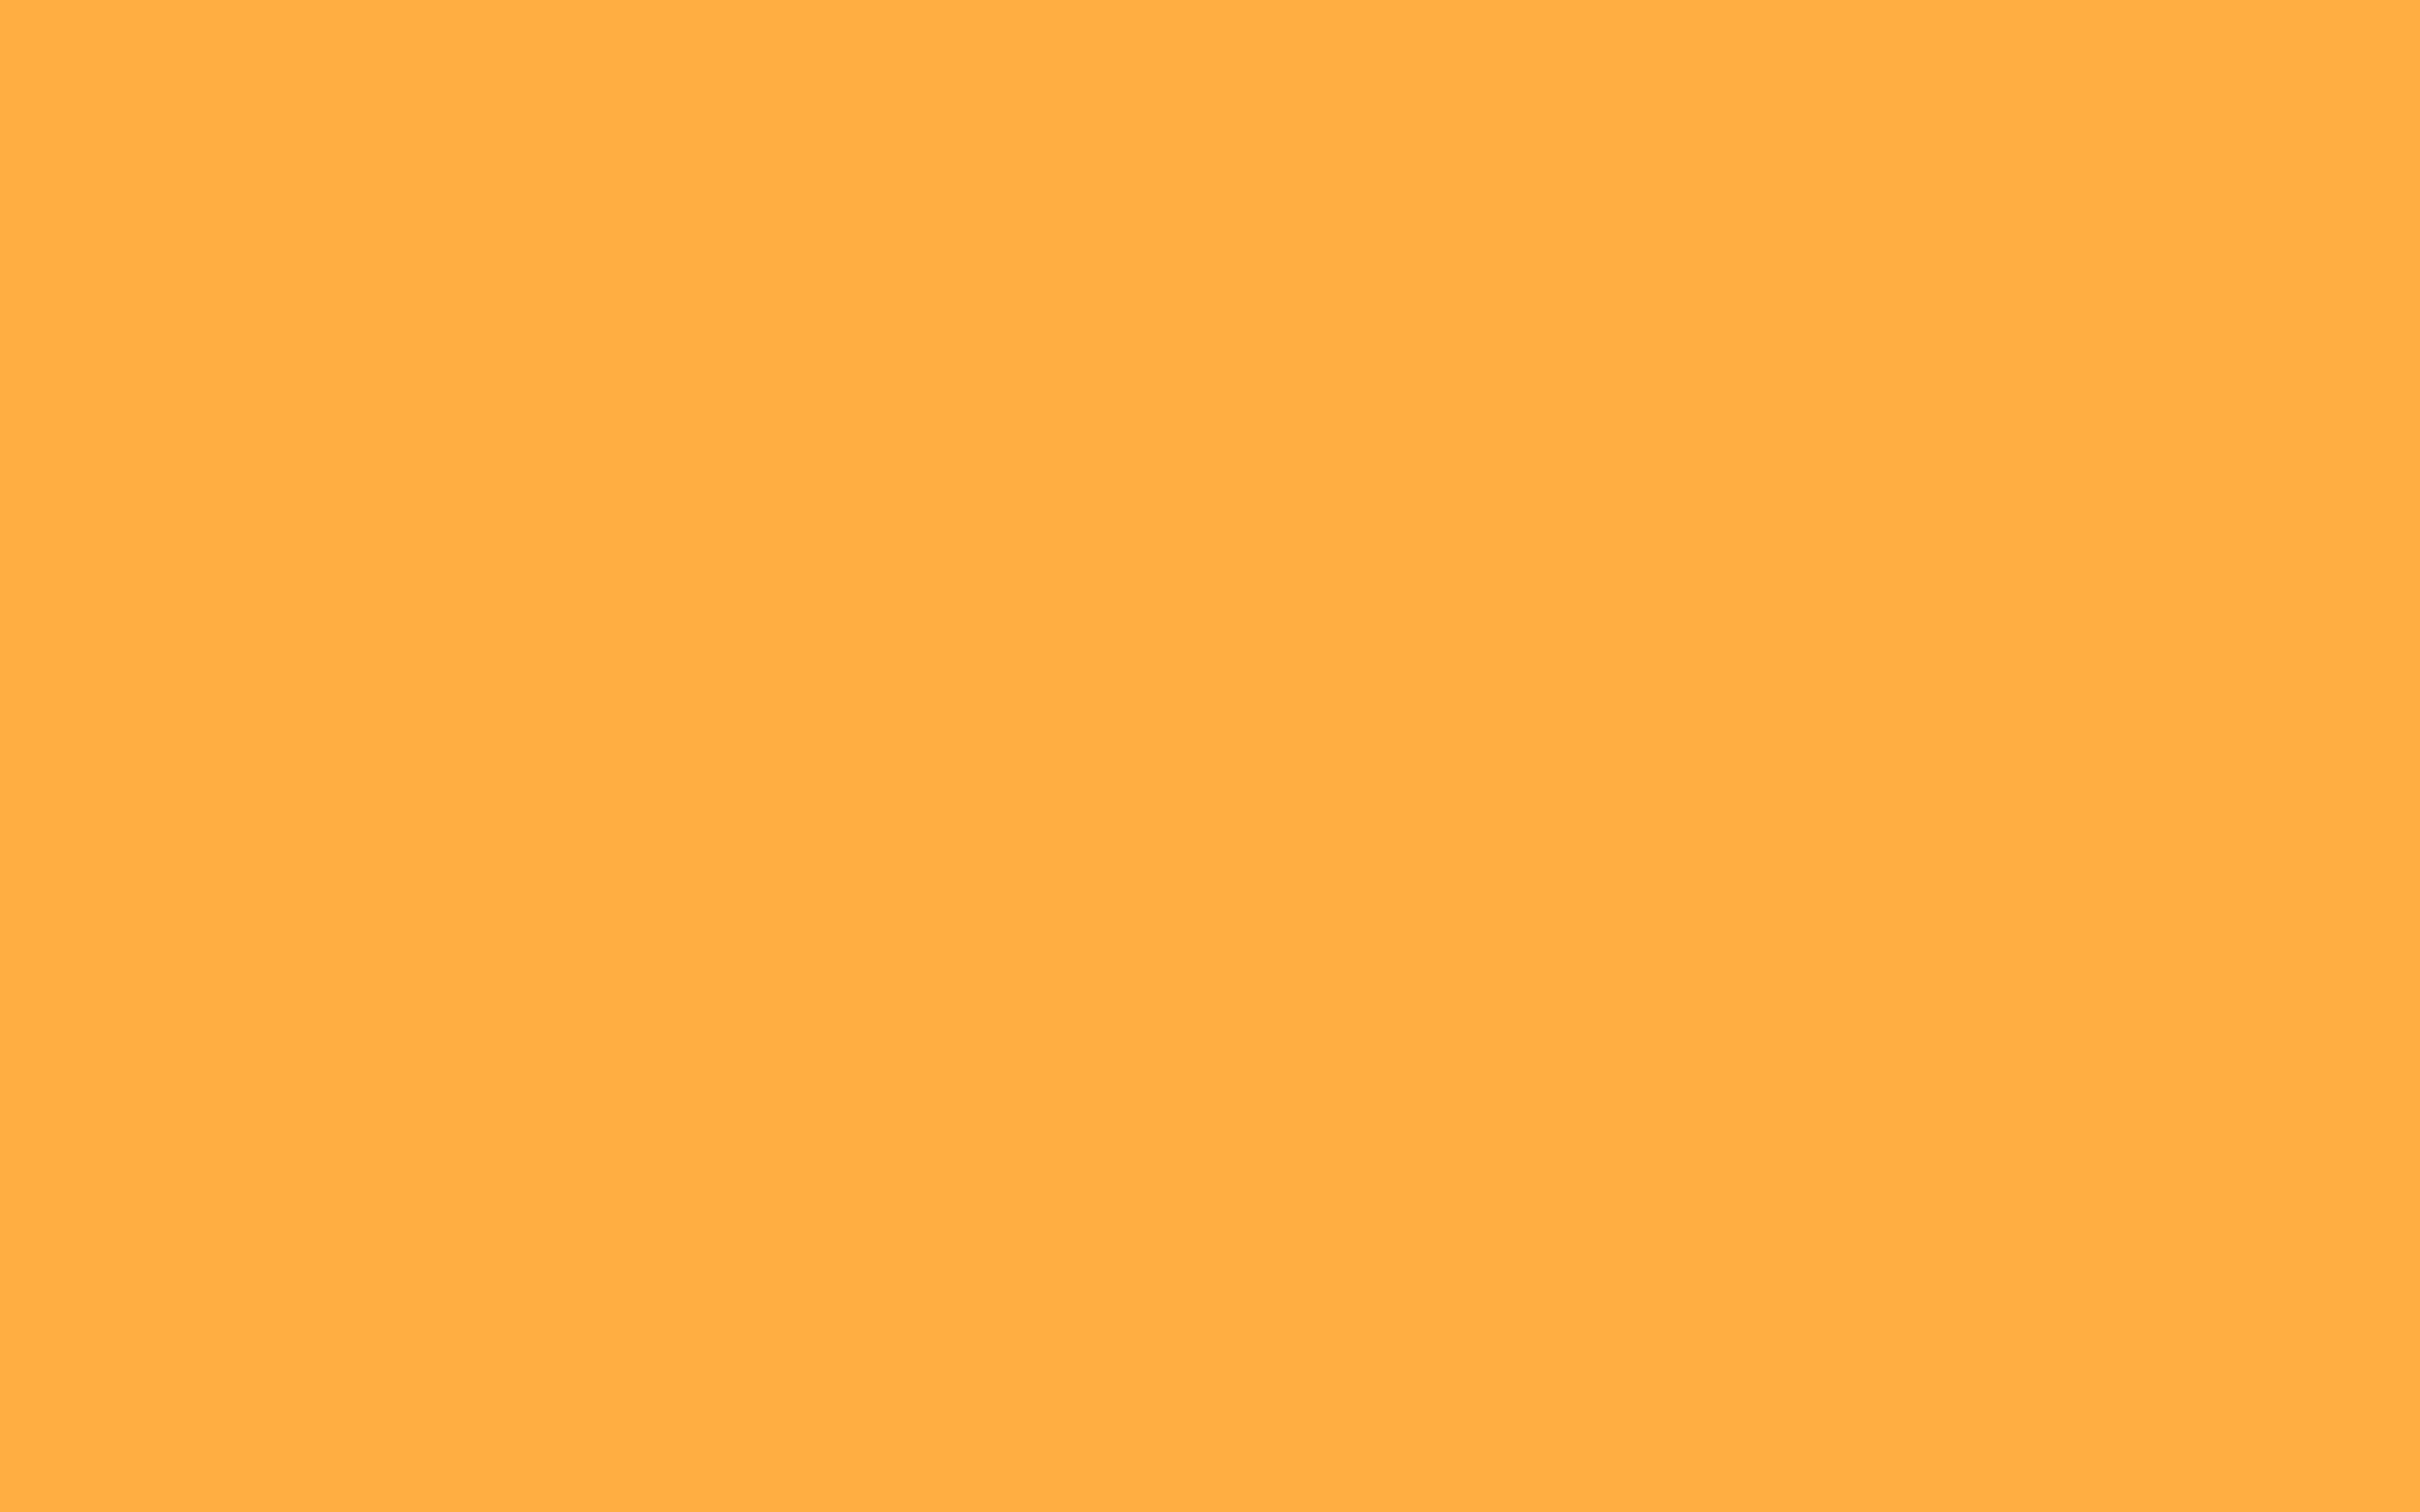 2560x1600 Yellow Orange Solid Color Background